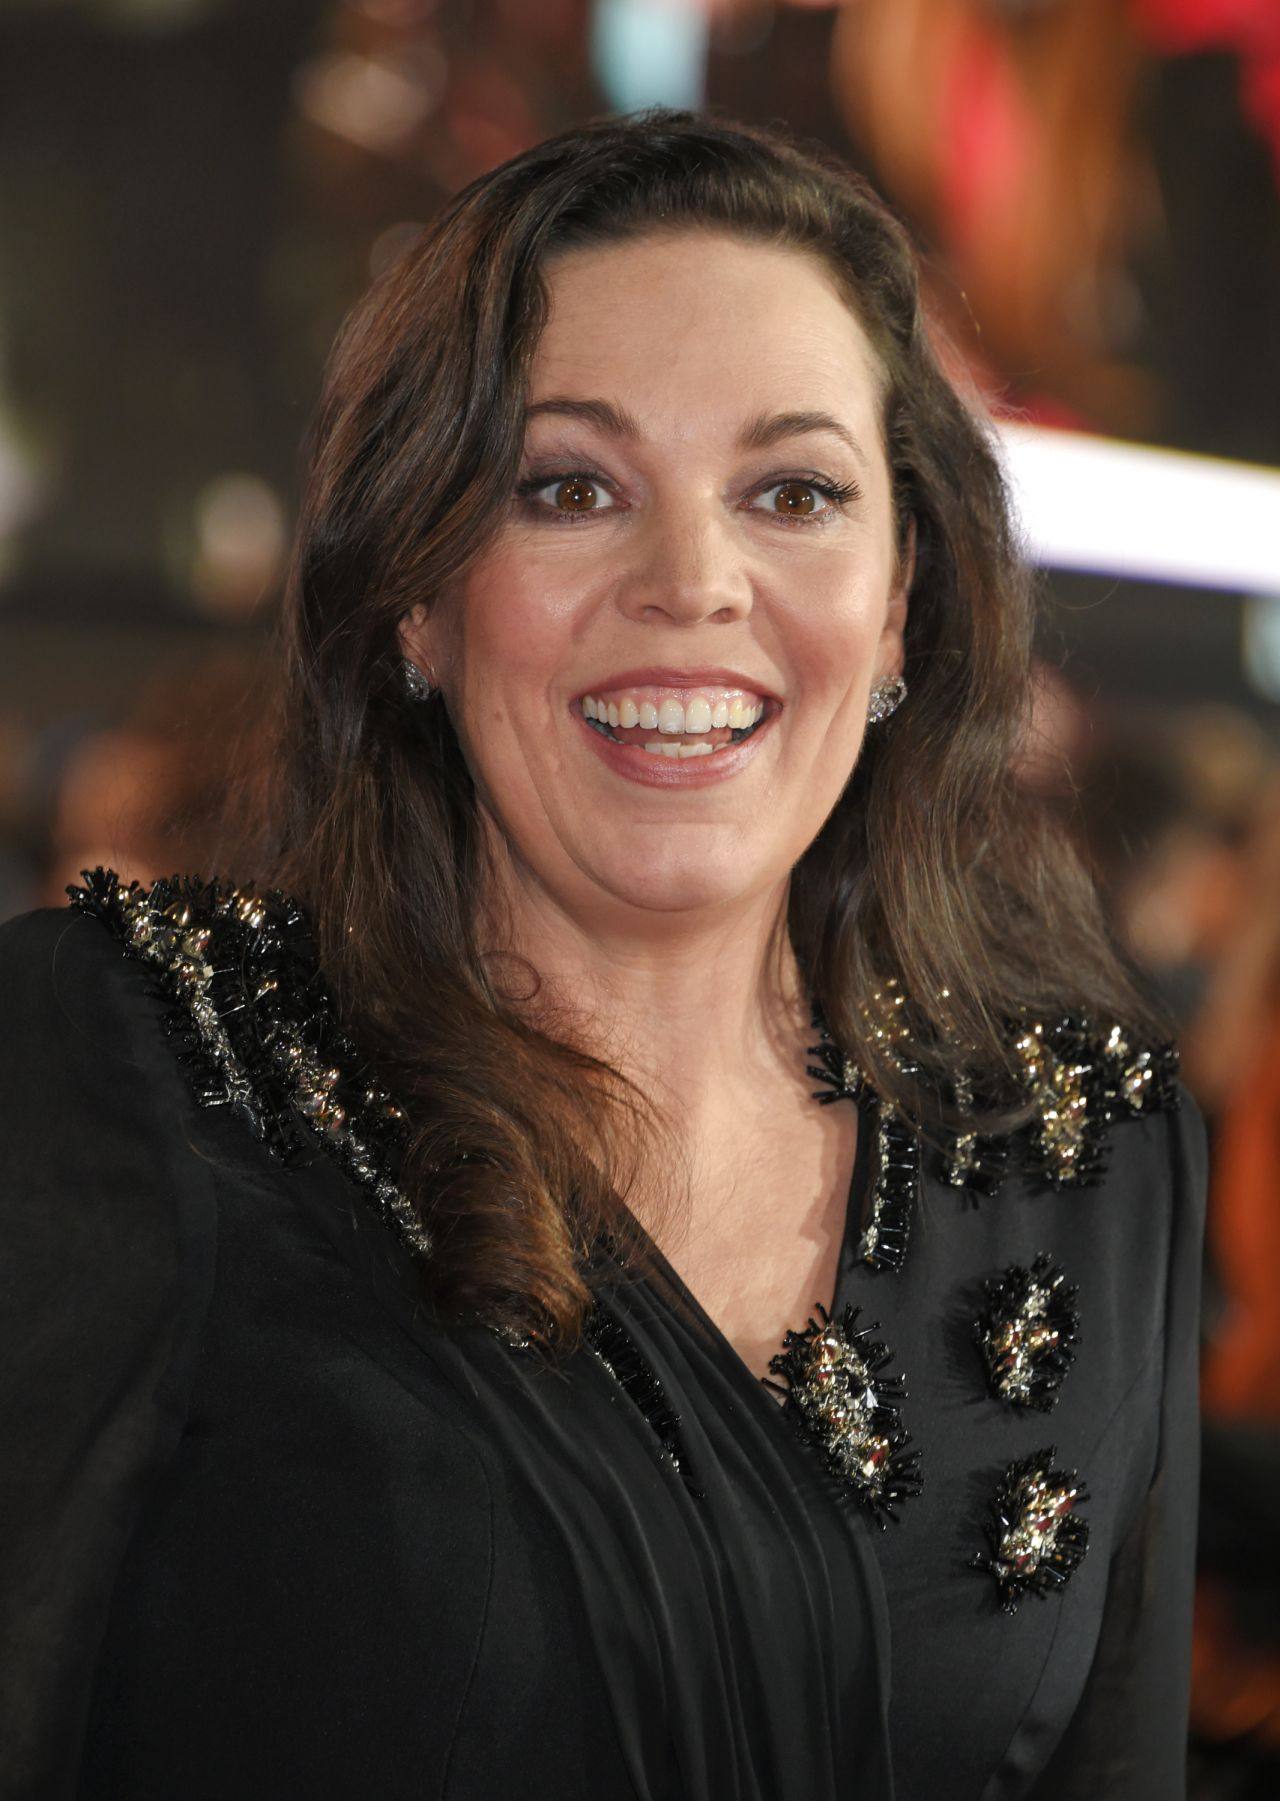 Olivia Colman Murder Orient Express Red Carpet